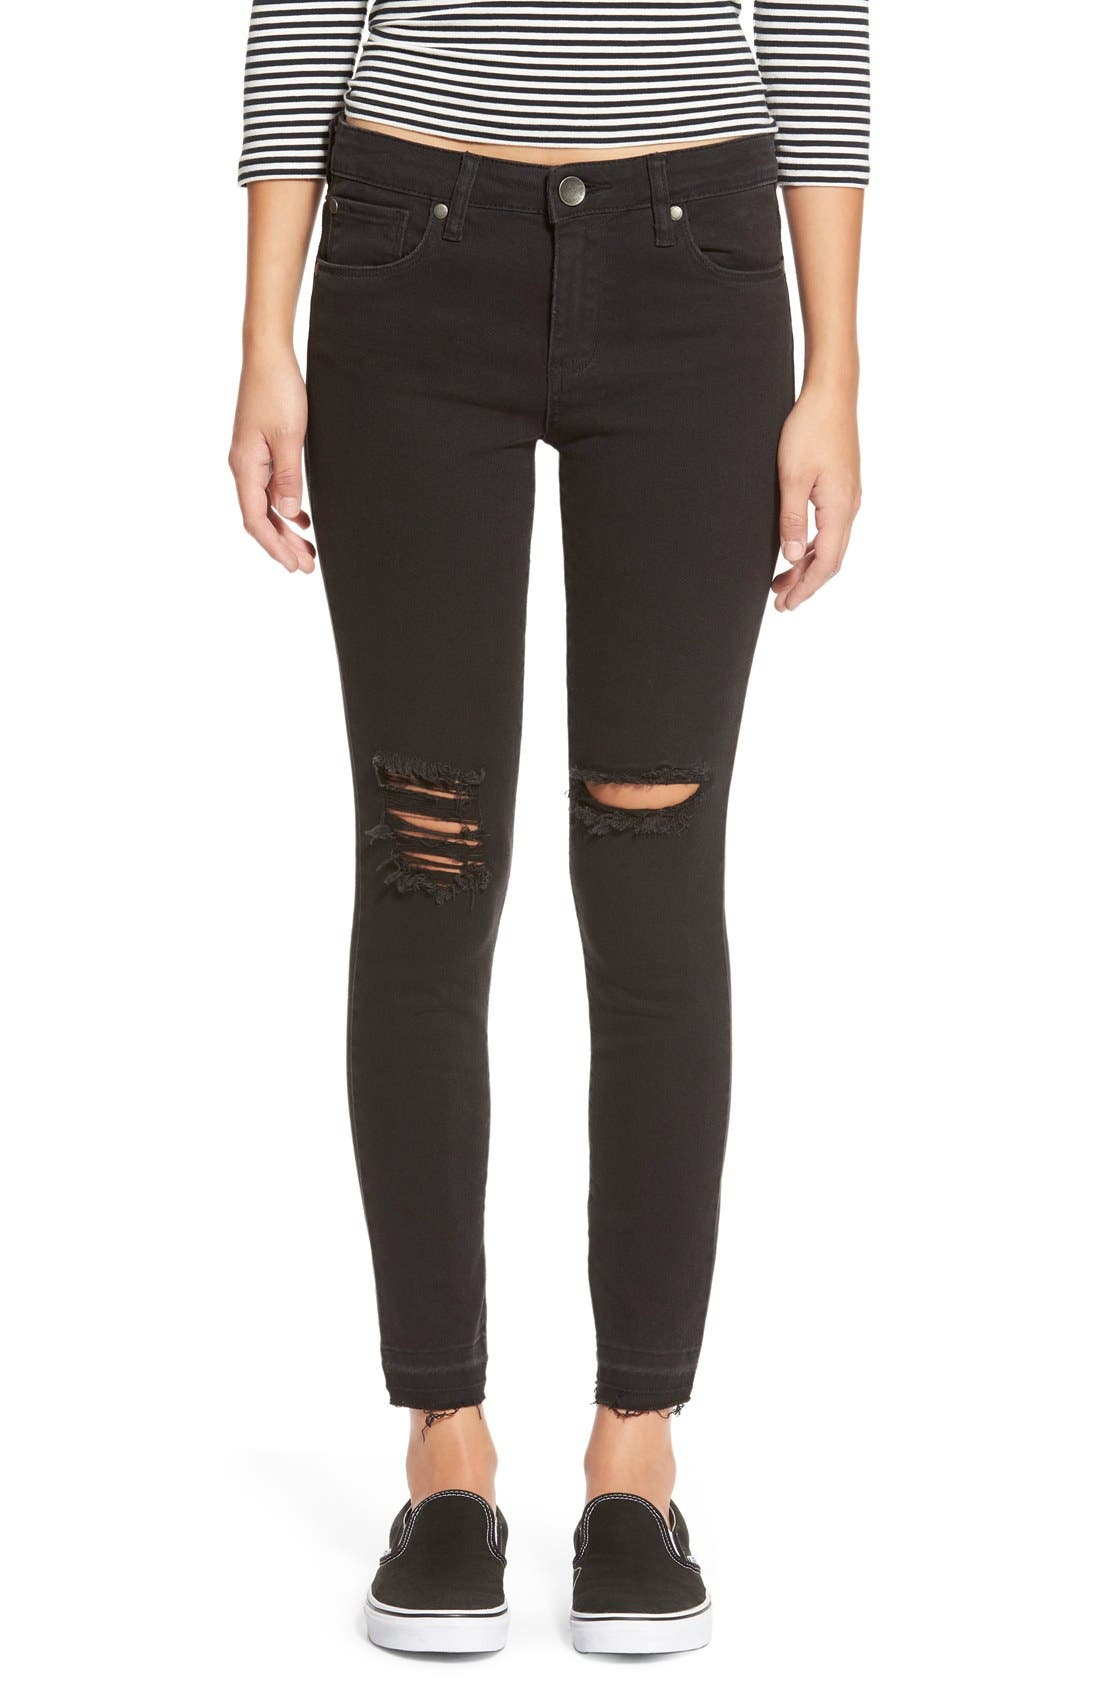 STSBlue 'Emma' Distressed High Rise Ankle Skinny Jeans,                         Main,                         color, Black